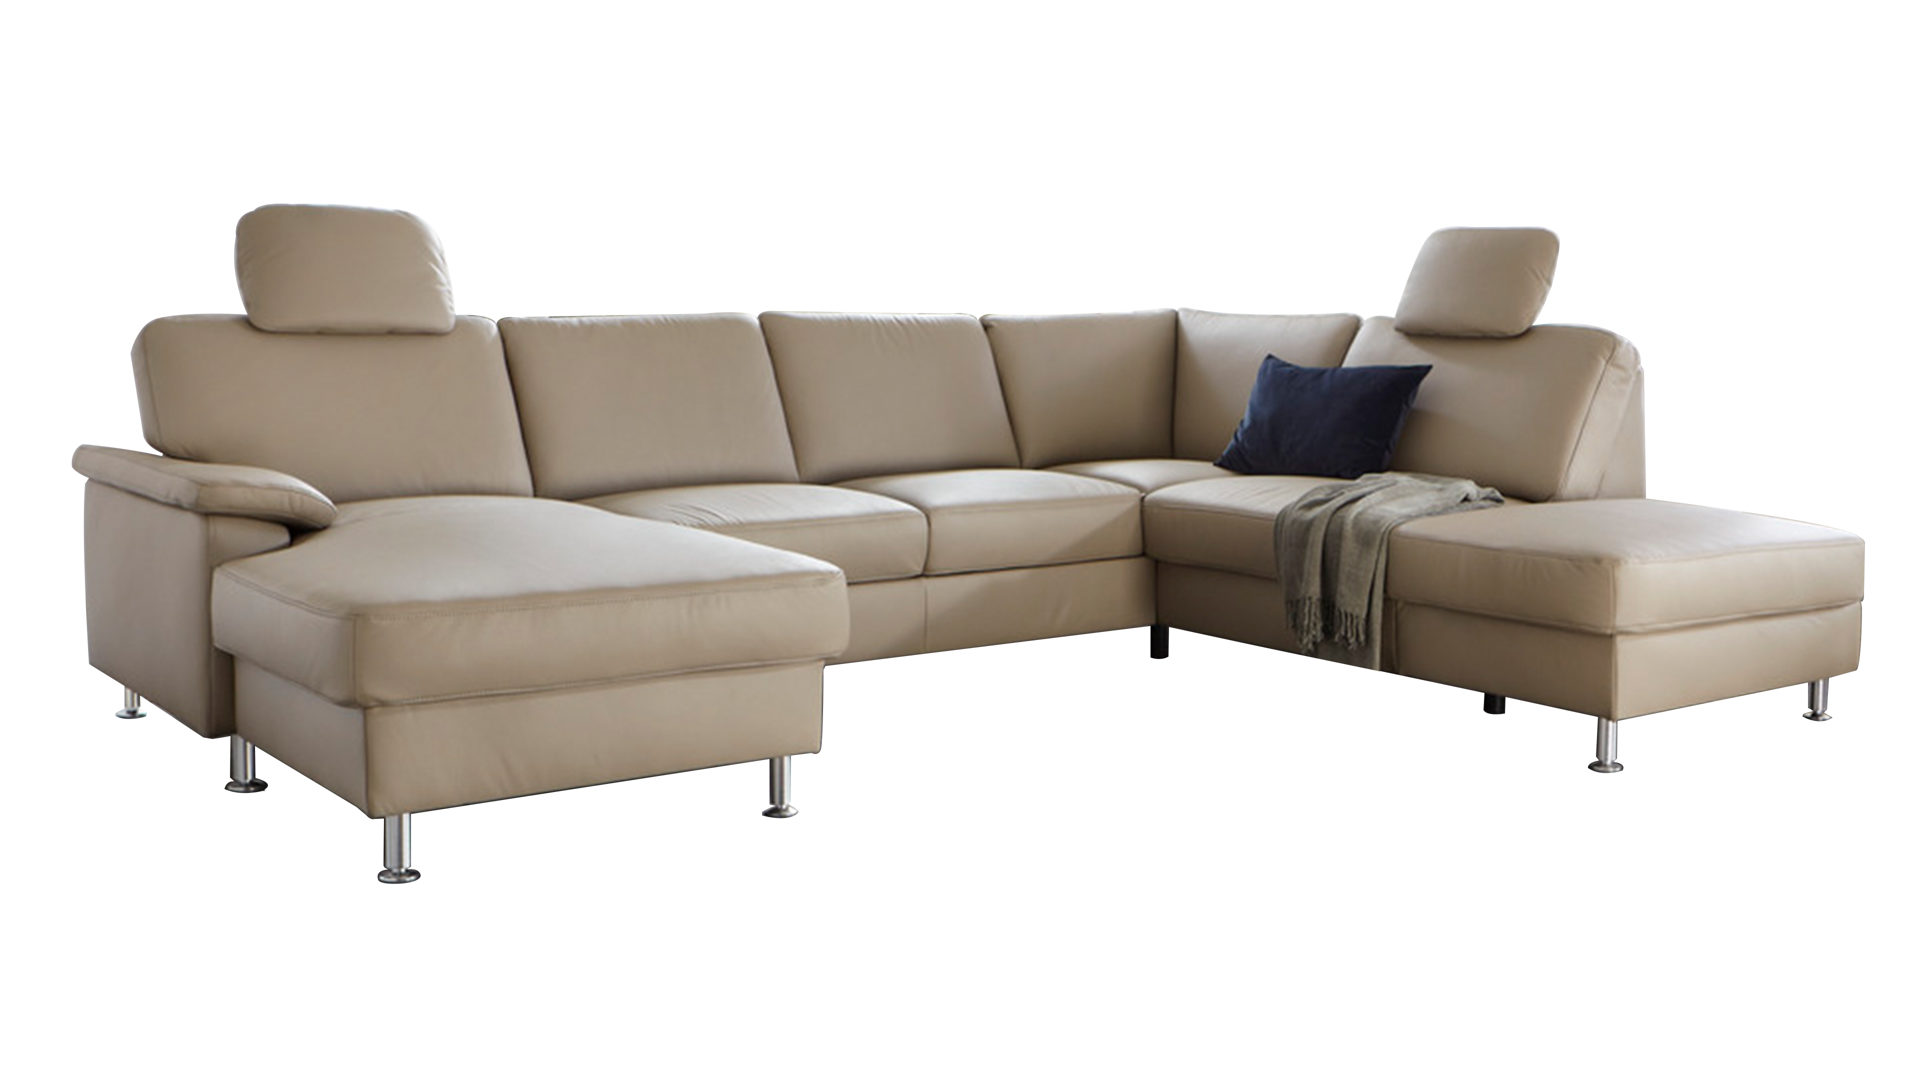 Modulmaster Ecksofa In U Form Pretty L Polstermobel